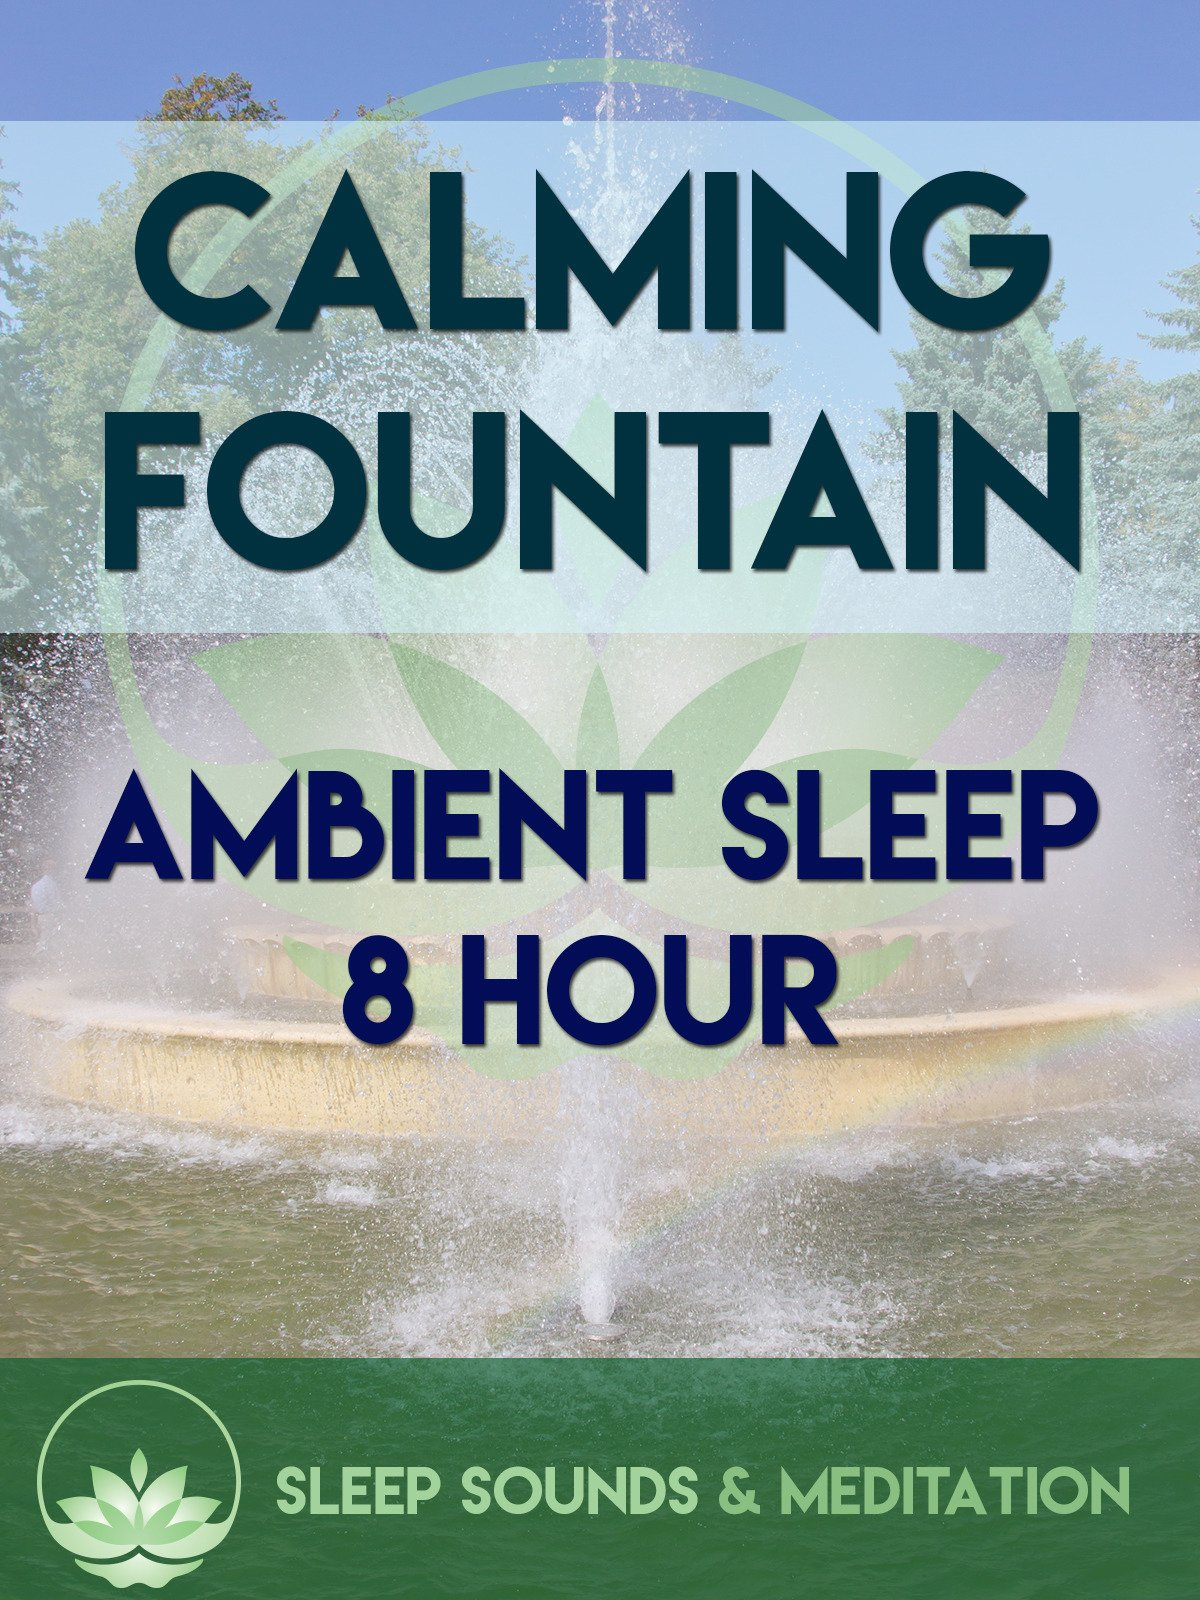 Calming Fountain